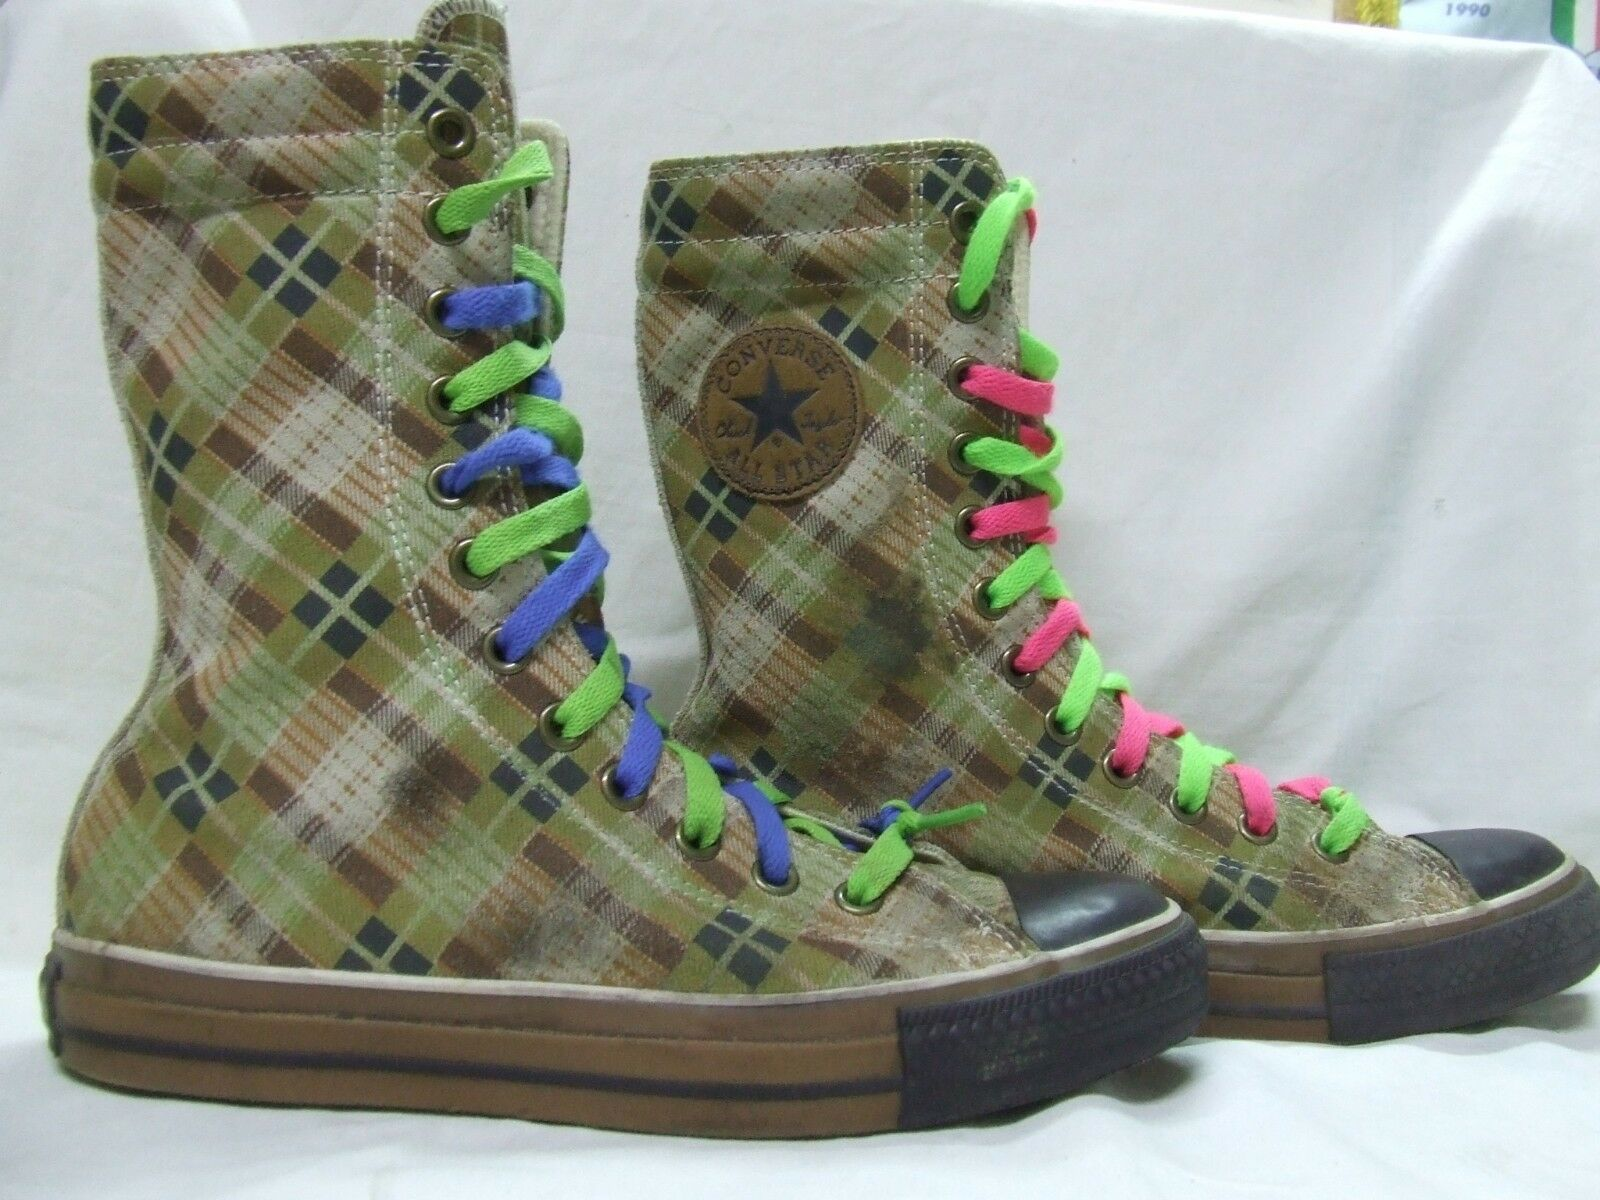 SHOES MAN WOMAN VINTAGE CONVERSE ALL STAR size 6,5 - 39,5 (054)